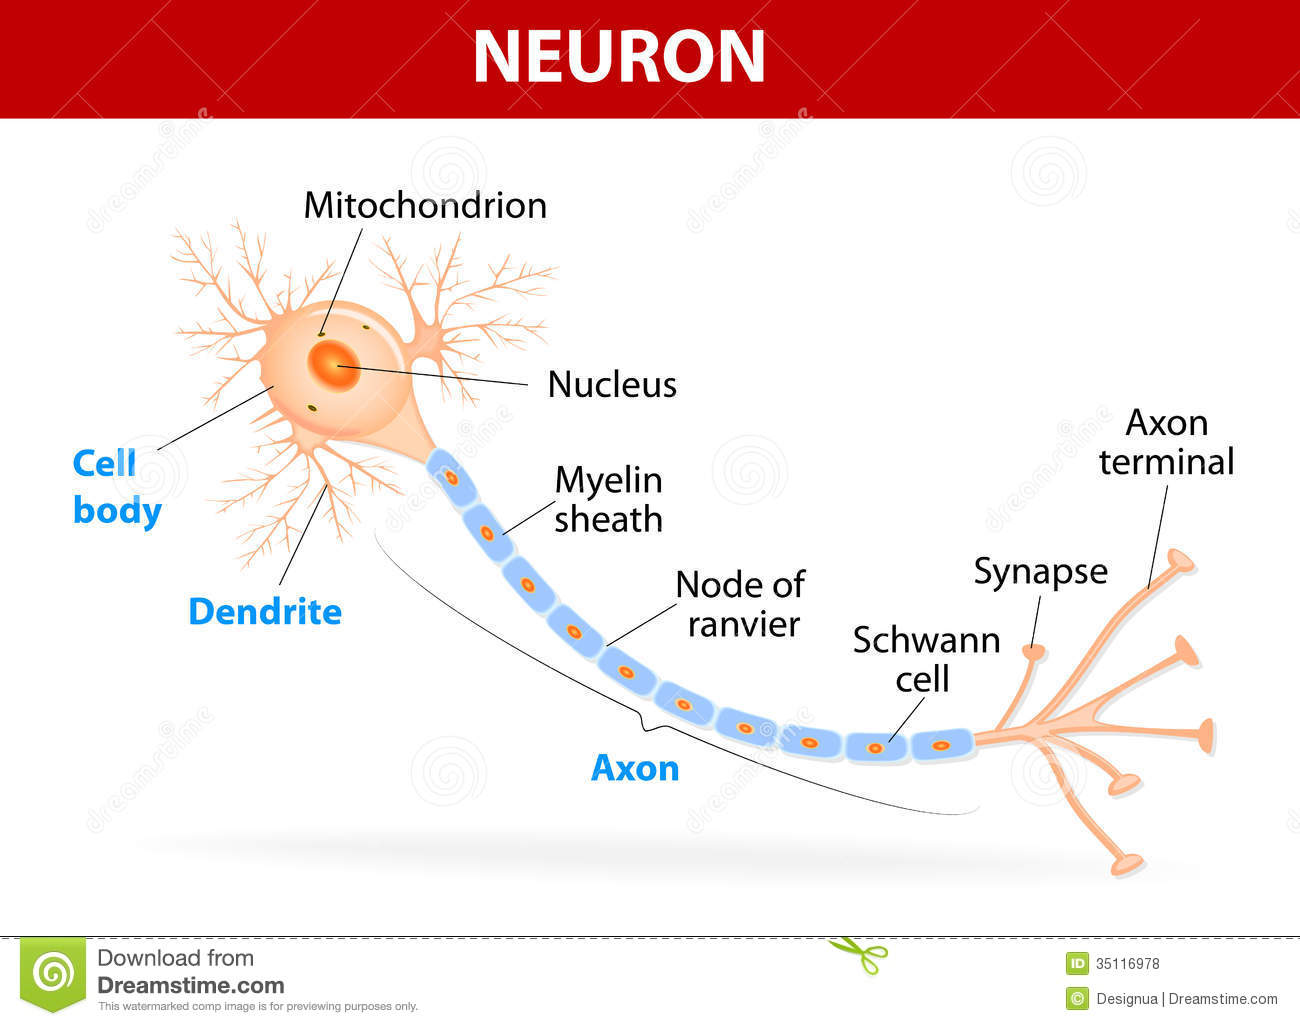 hight resolution of anatomy of a typical human neuron axon synapse dendrite mitochondrion myelin sheath node ranvier and schwann cell vector diagram